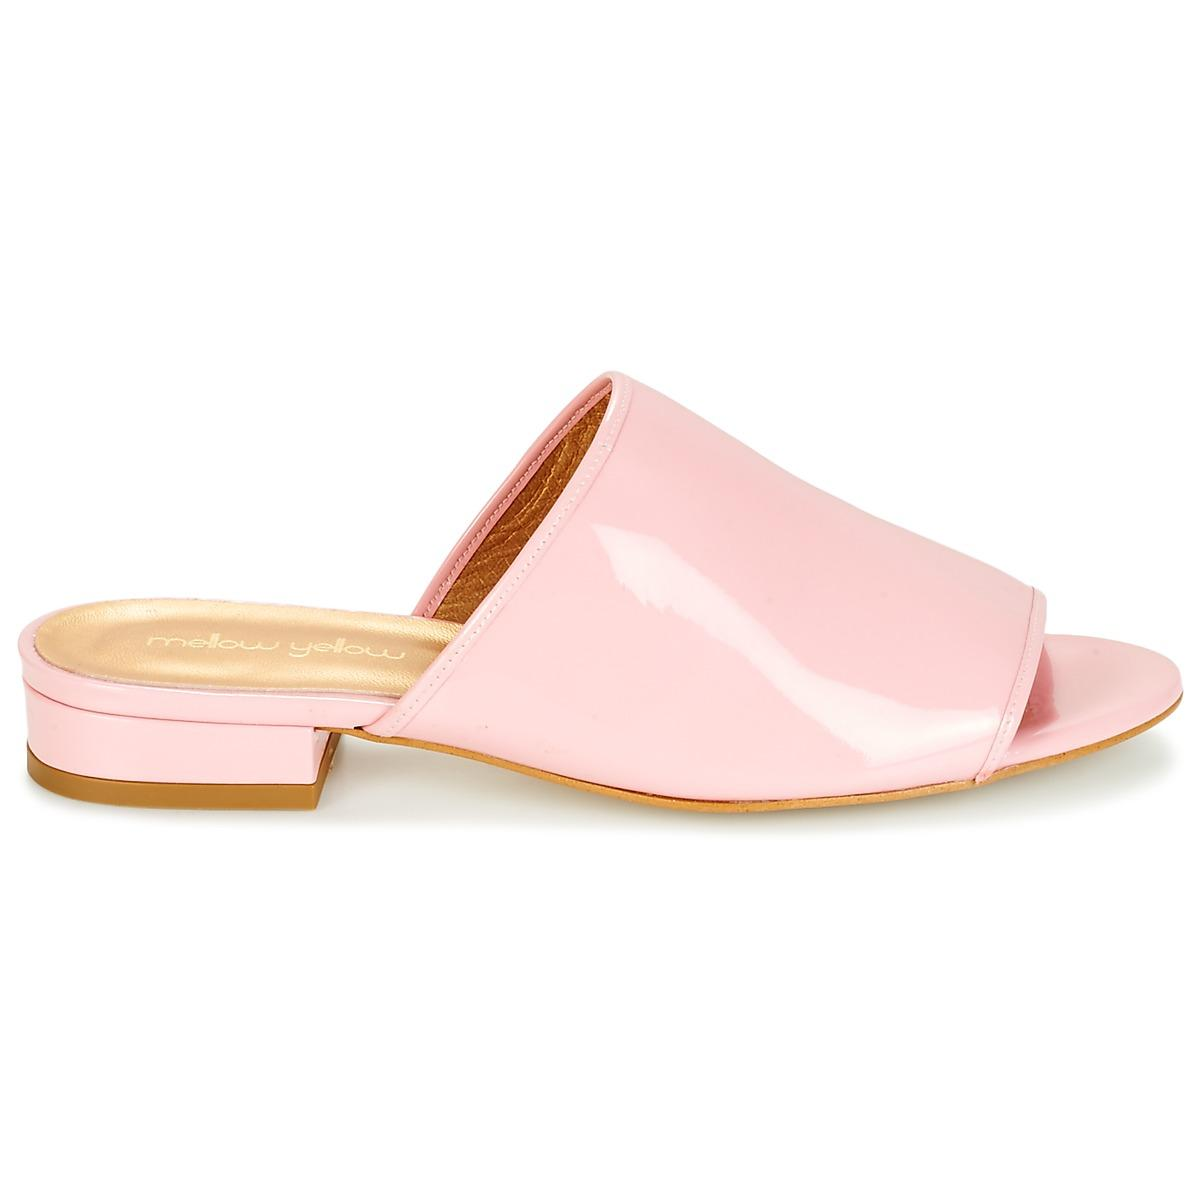 d311b80702ed Mellow Yellow - Bytatane Women s Mules   Casual Shoes In Pink - Lyst. View  fullscreen